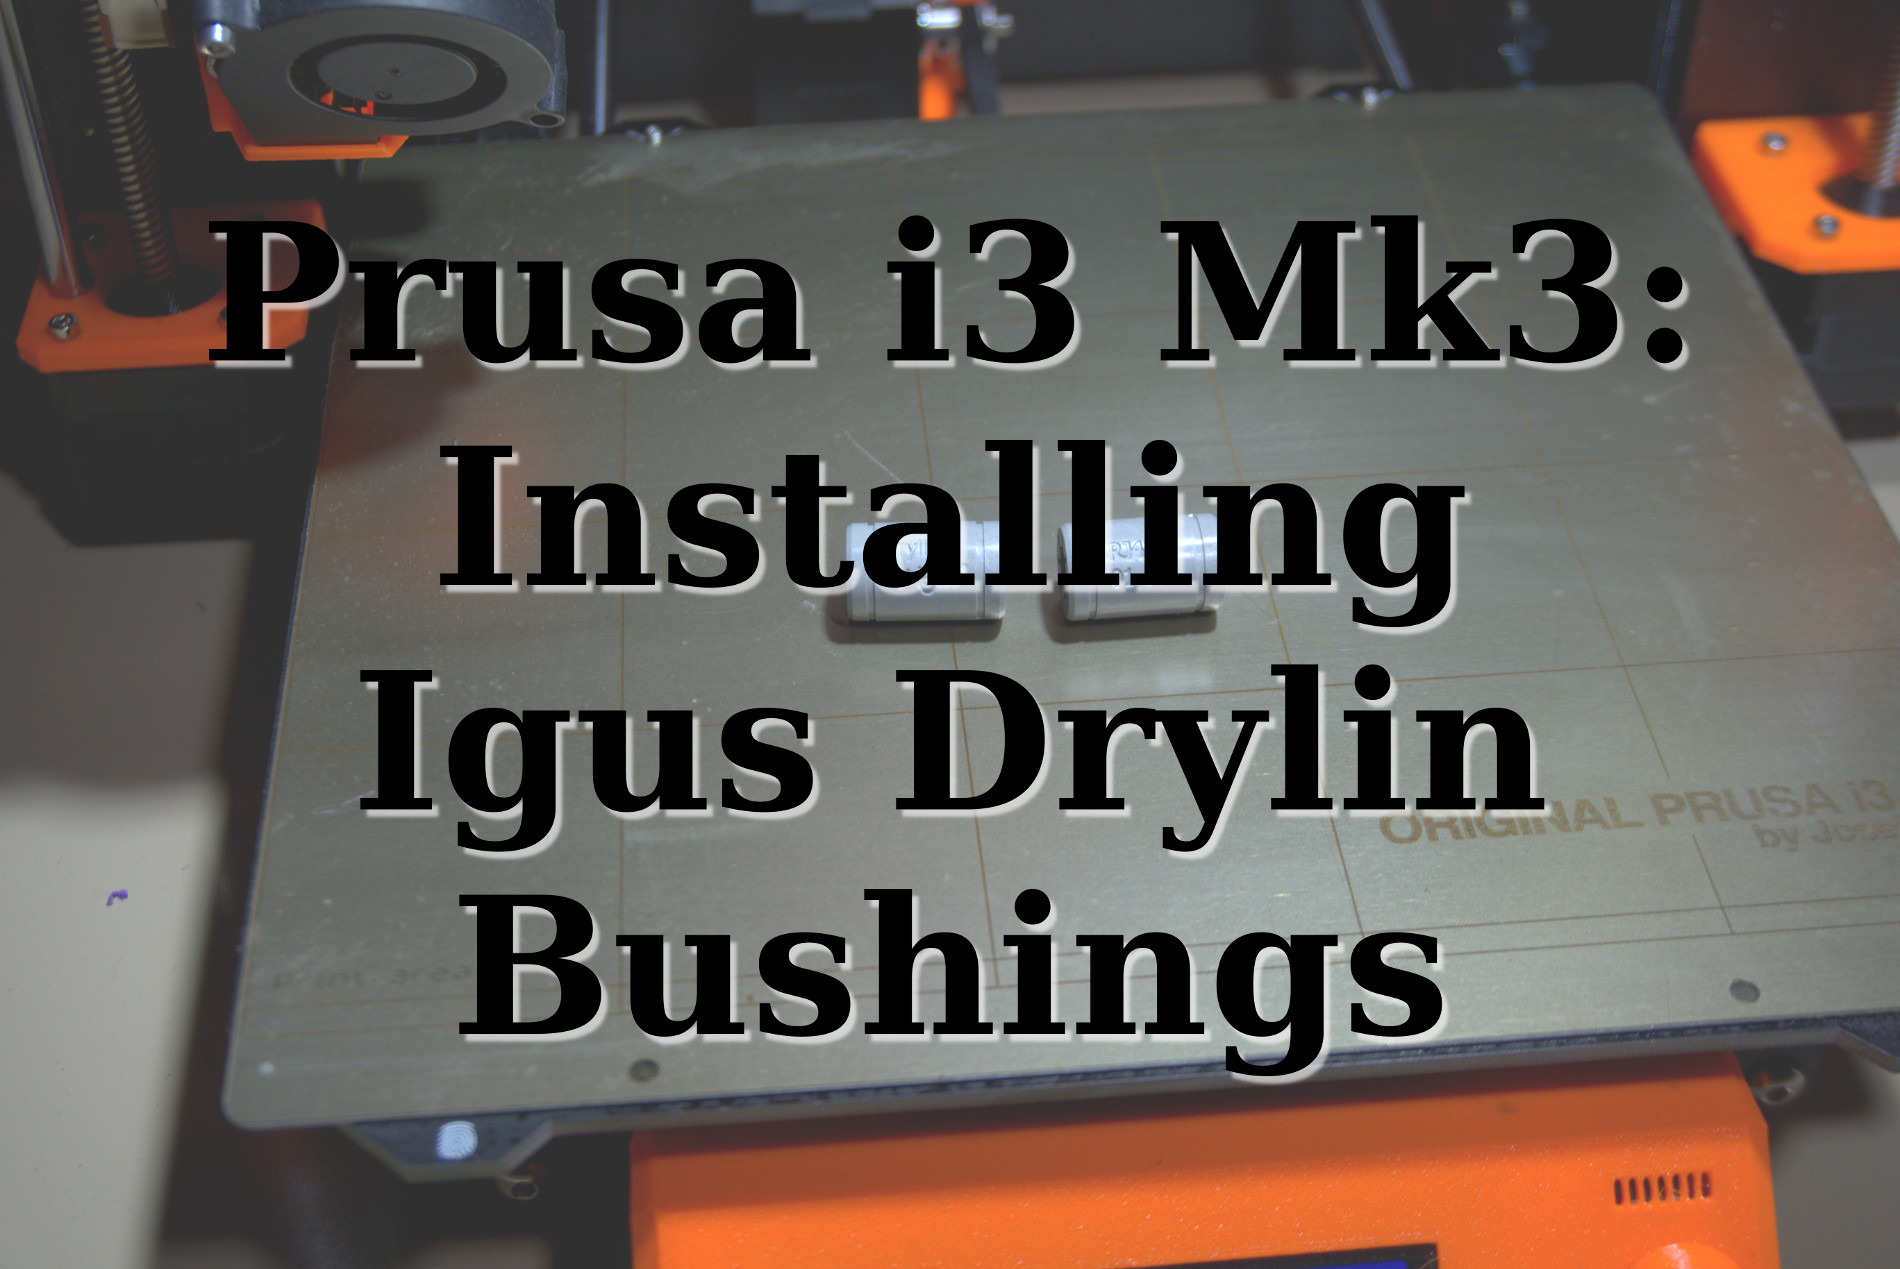 Image of Igus Drylin bushings sitting on a Prusa i3 Mk3 printbed